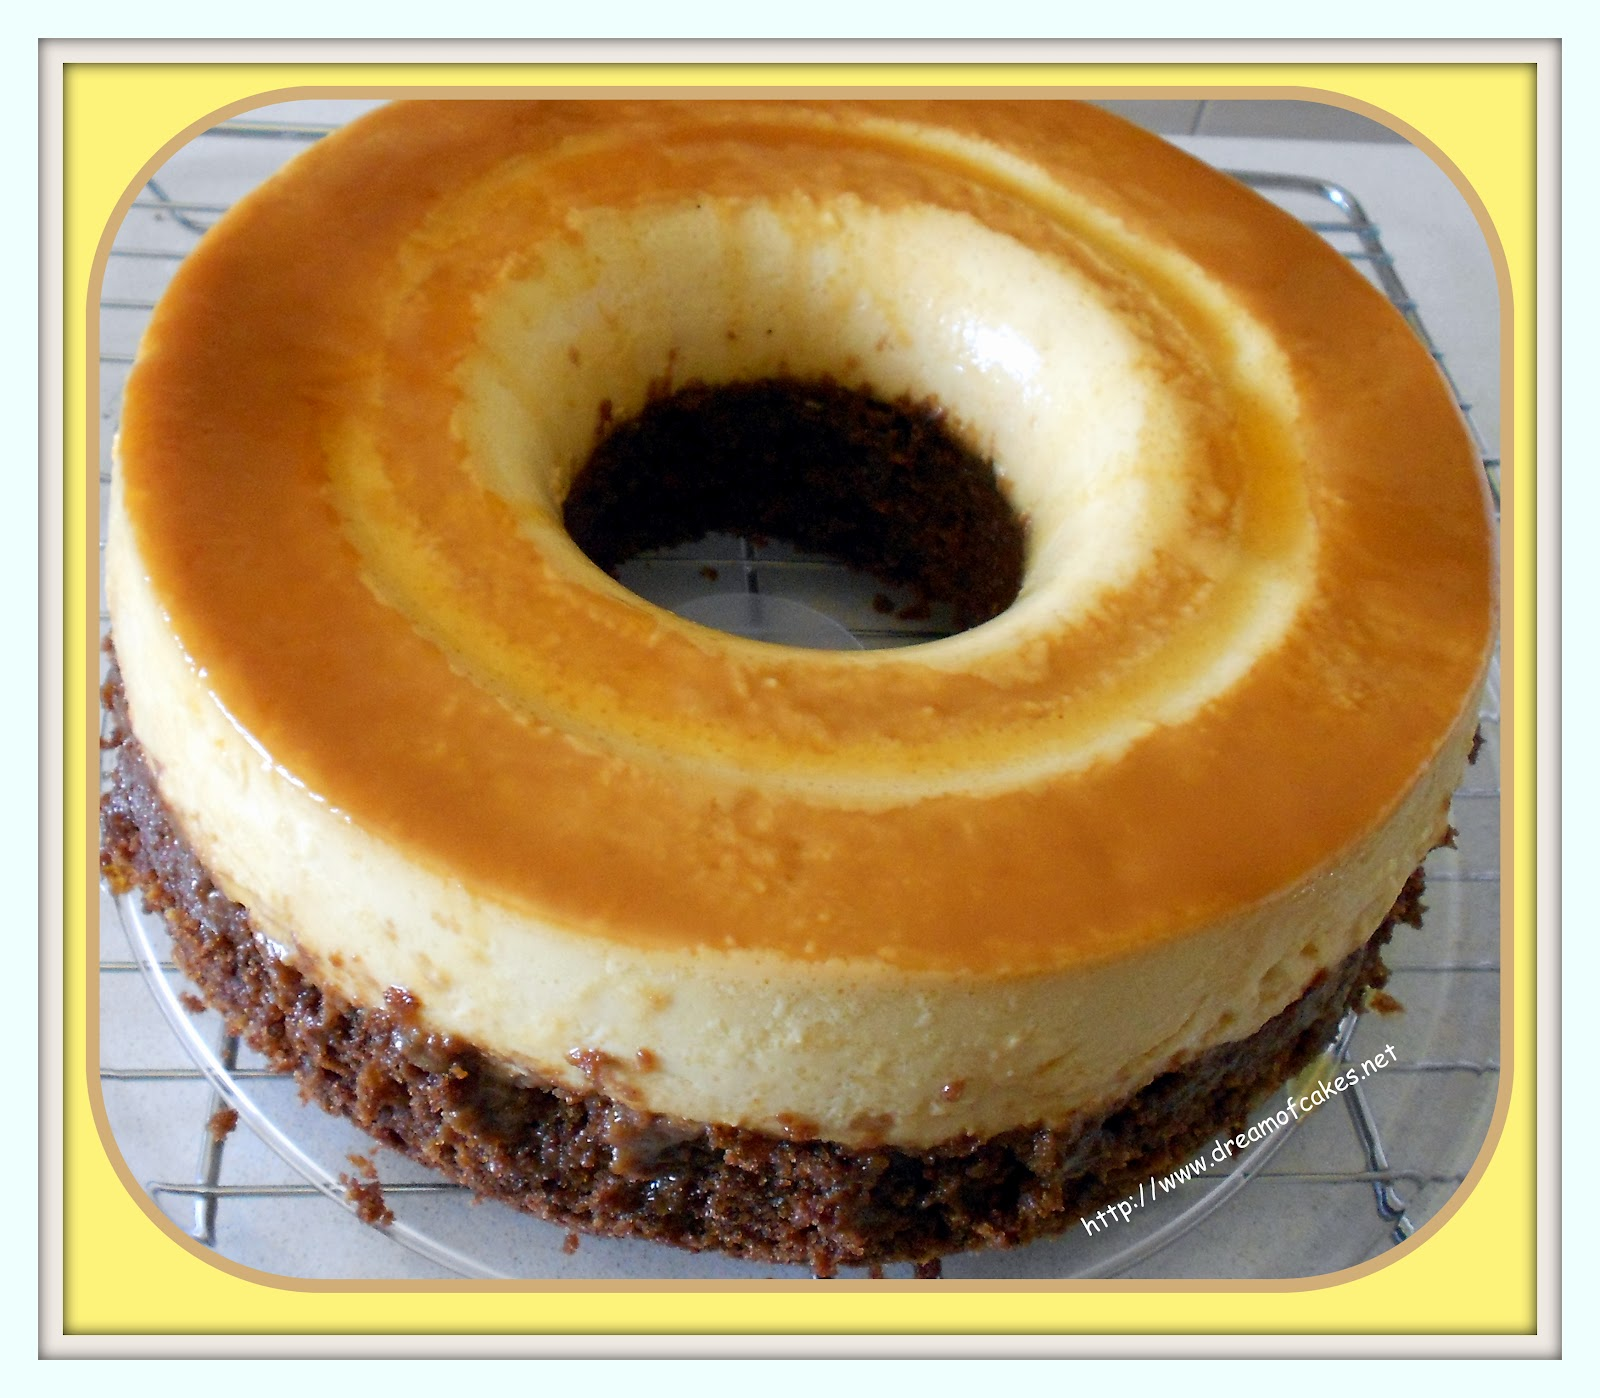 Food Network Chocoflan http://www.dreamofcakes.net/2012/05/mexican-chocoflan.html